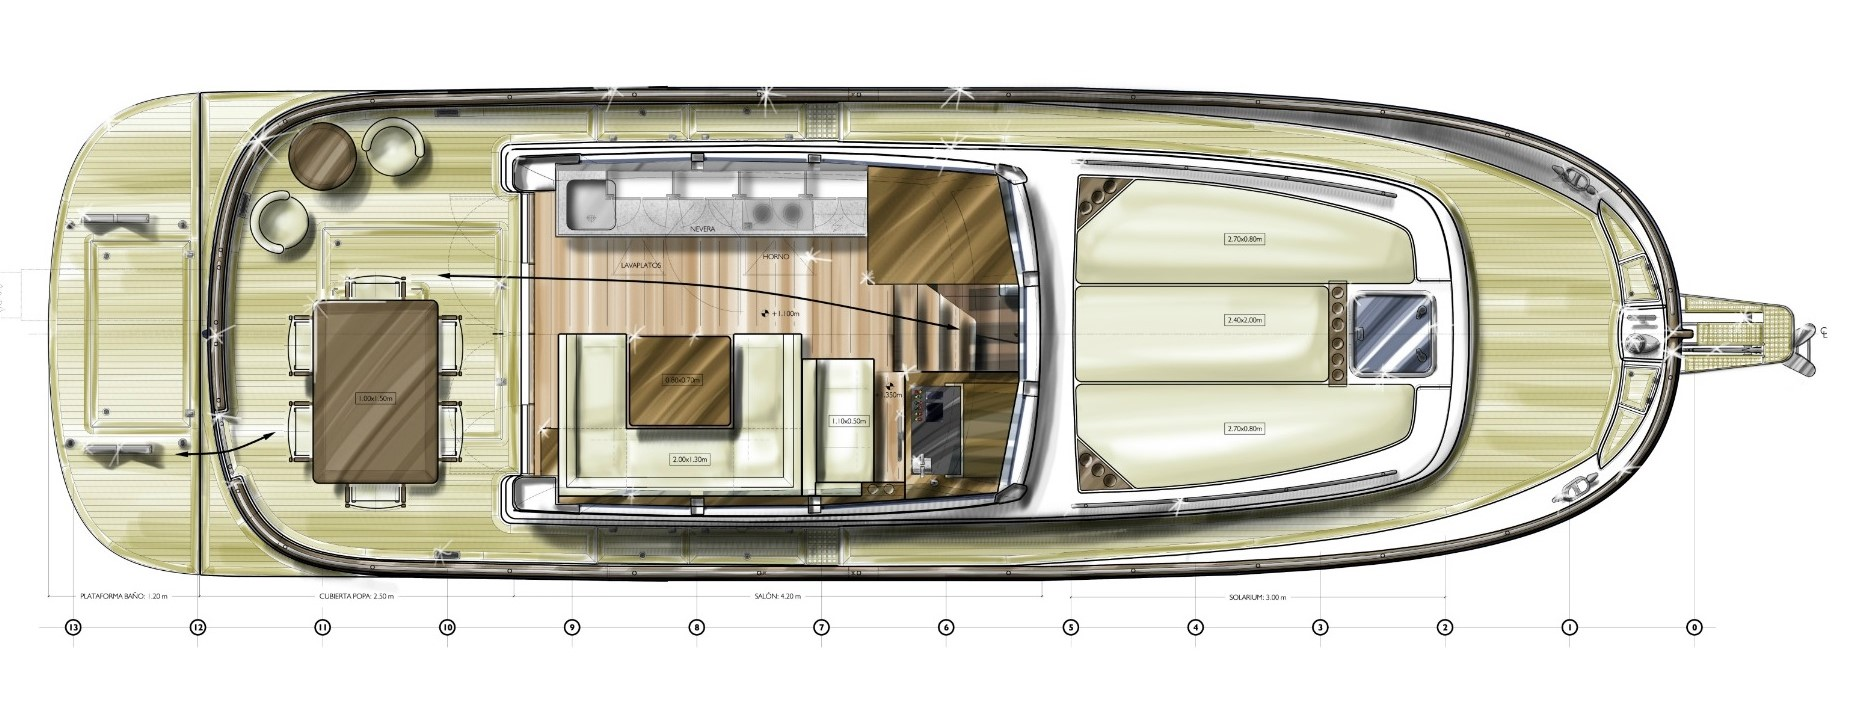 minorca islander 42 hardtop layout main deck galley option